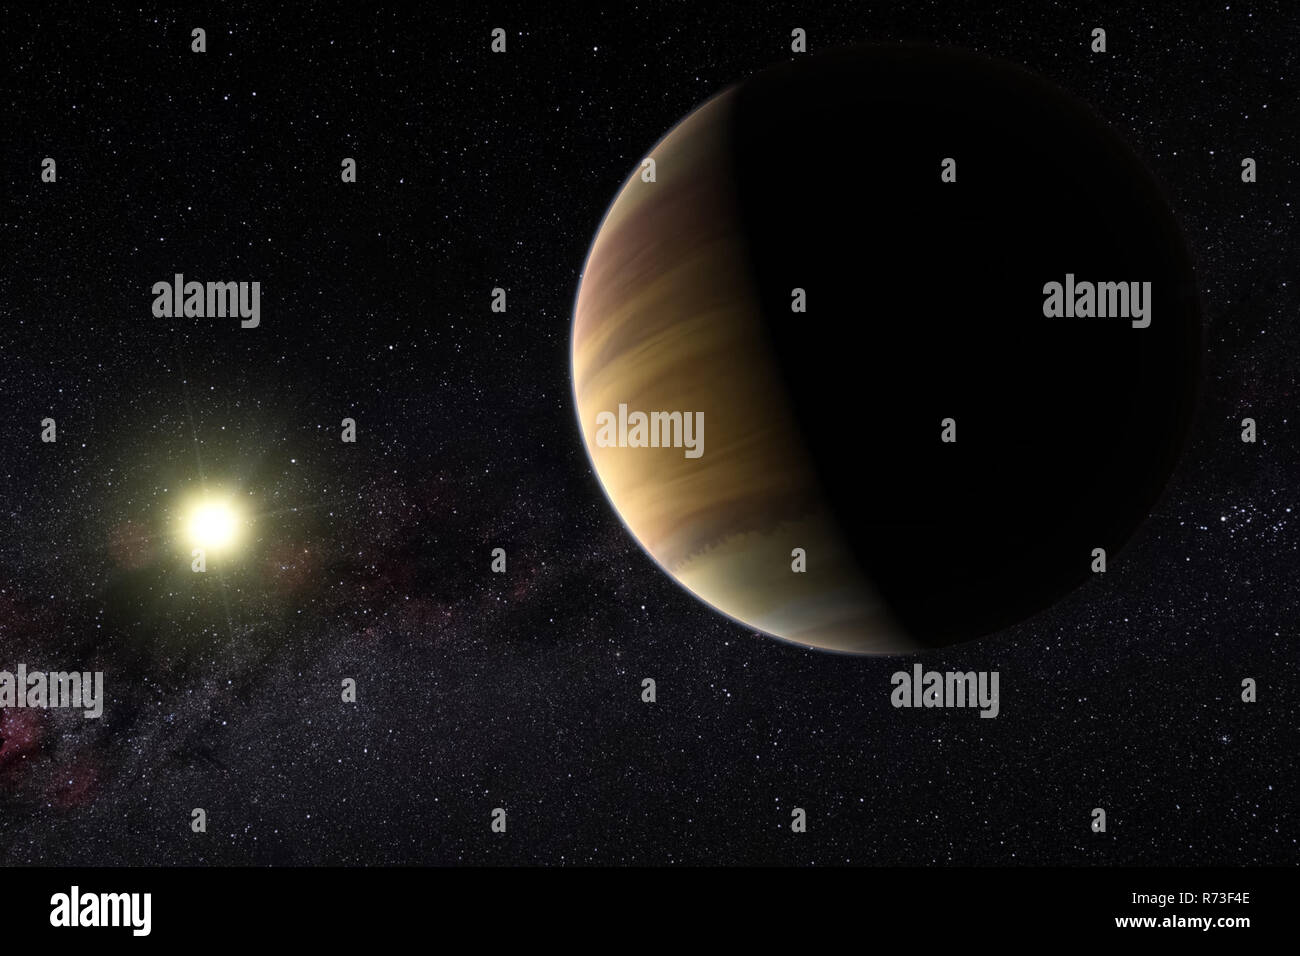 A large gas planet on the background of its star. Computer graphics. Exoplanet in the artist's view - Stock Image